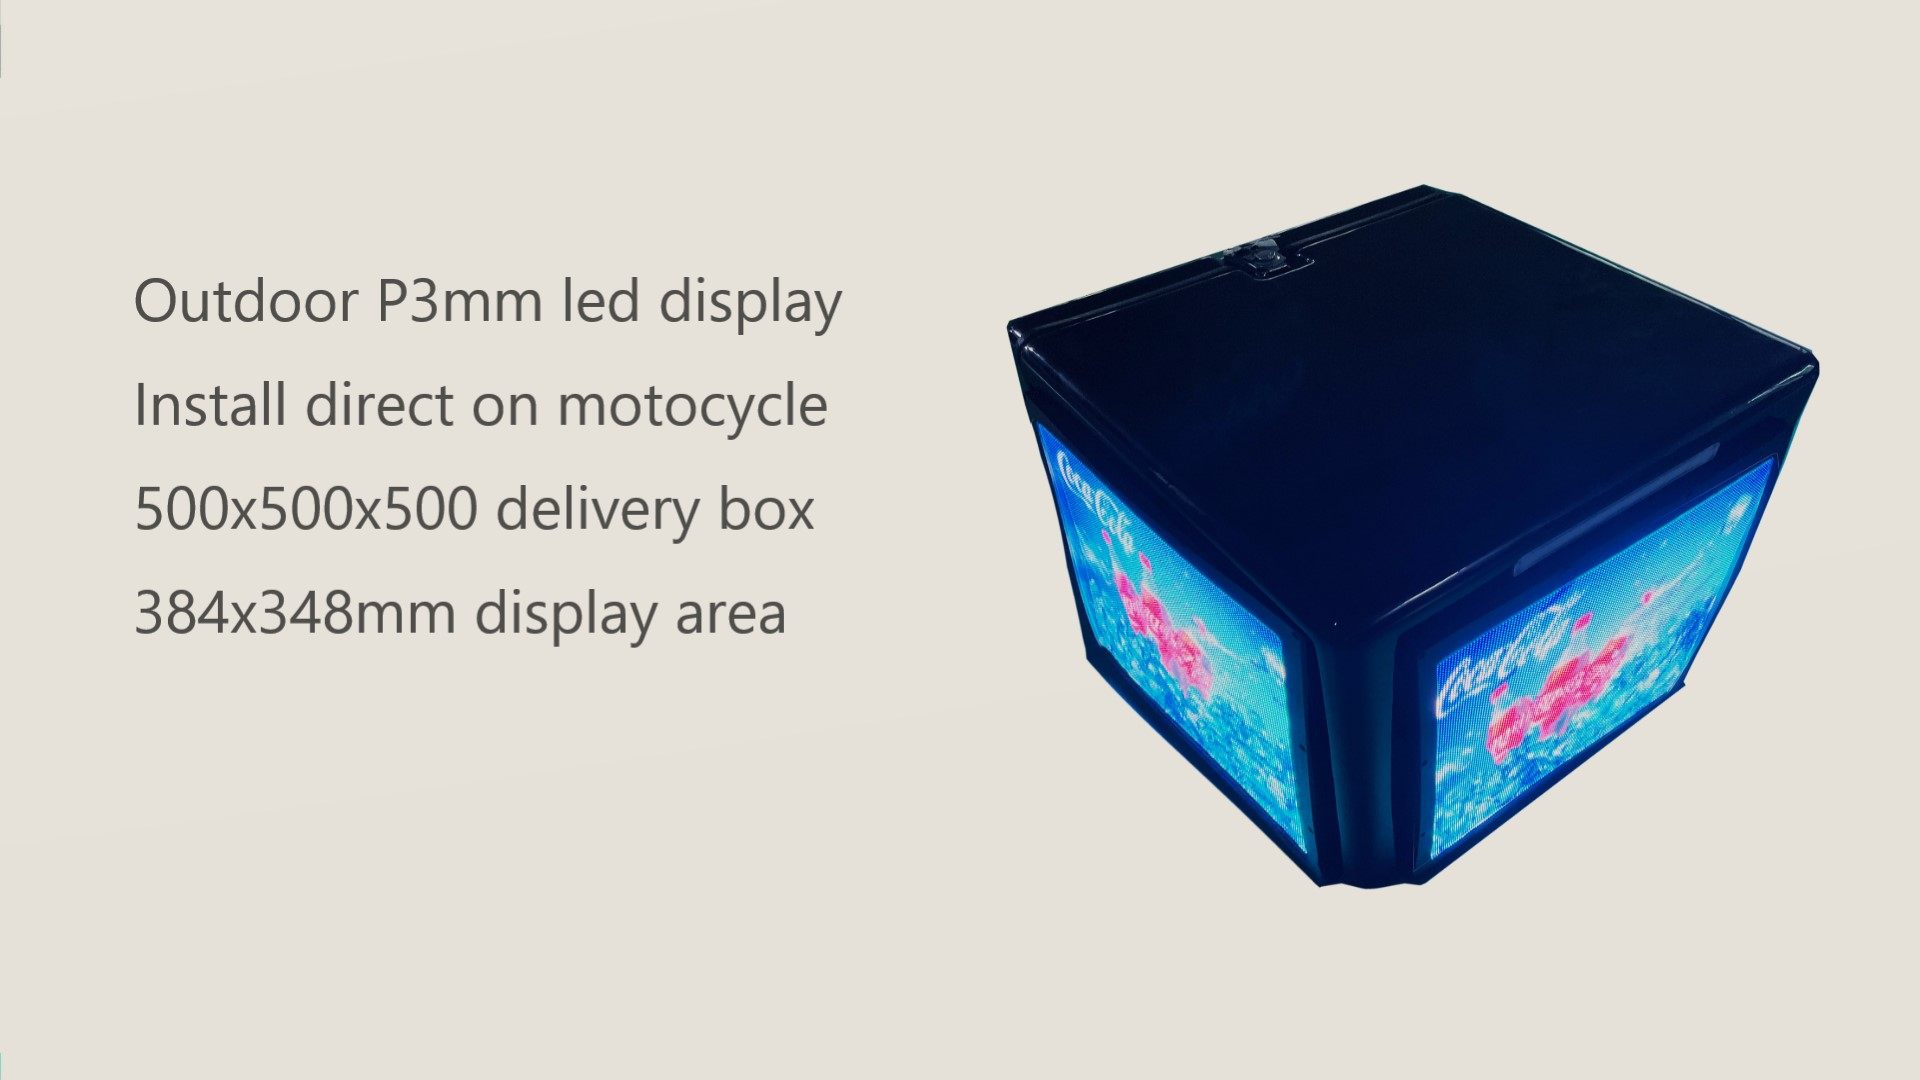 Outdoor P3mm led display delivery box for motocycle